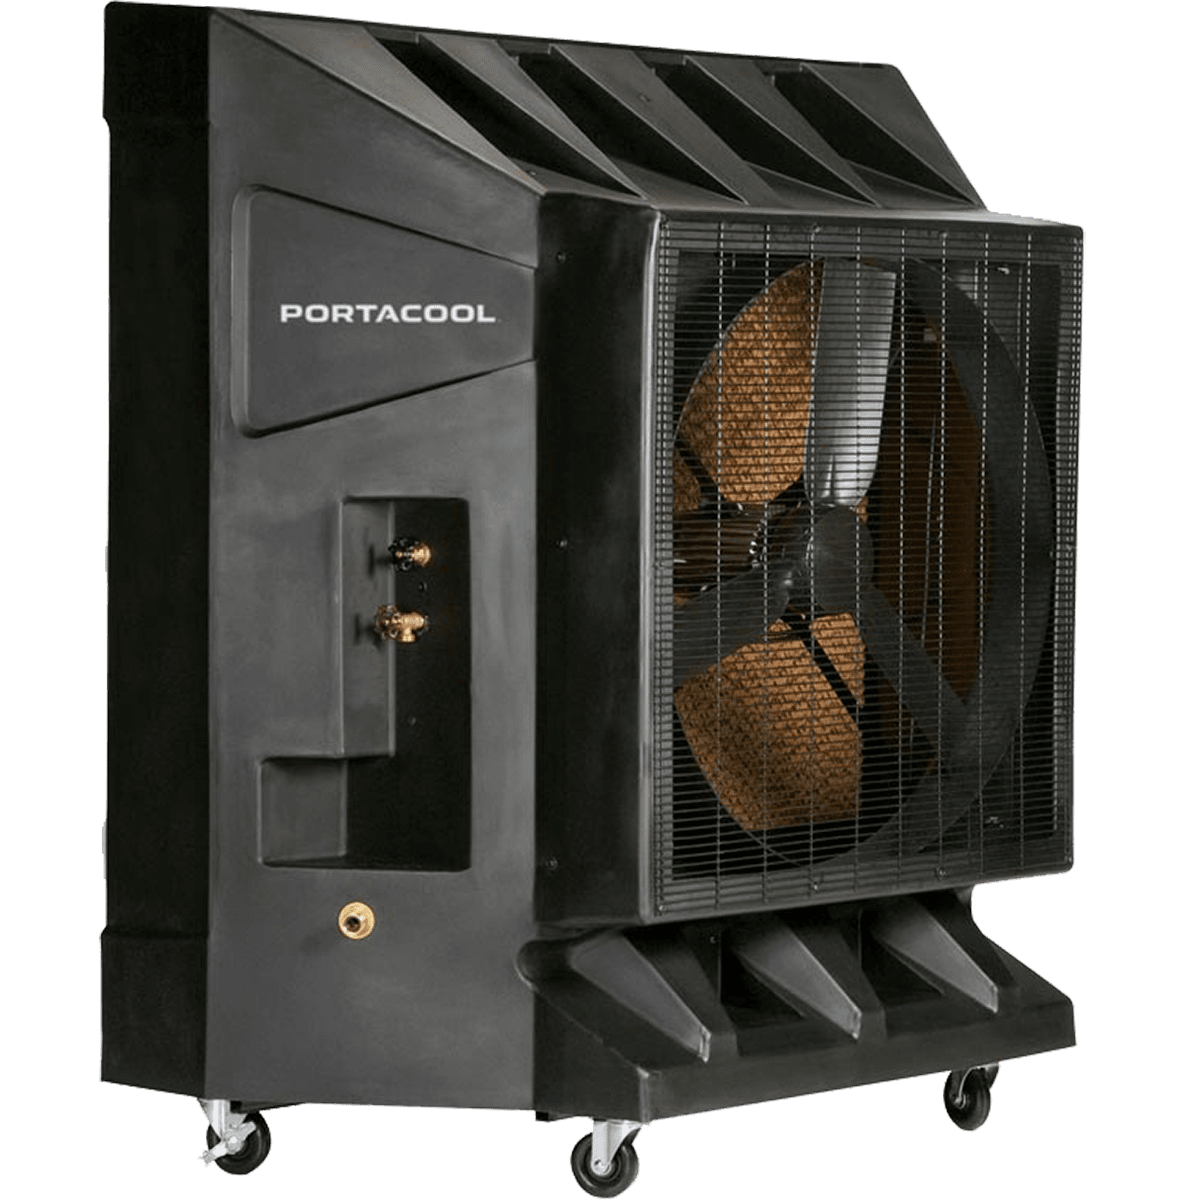 Portacool 36-Inch Evaporative Cooler 1 Speed po2142